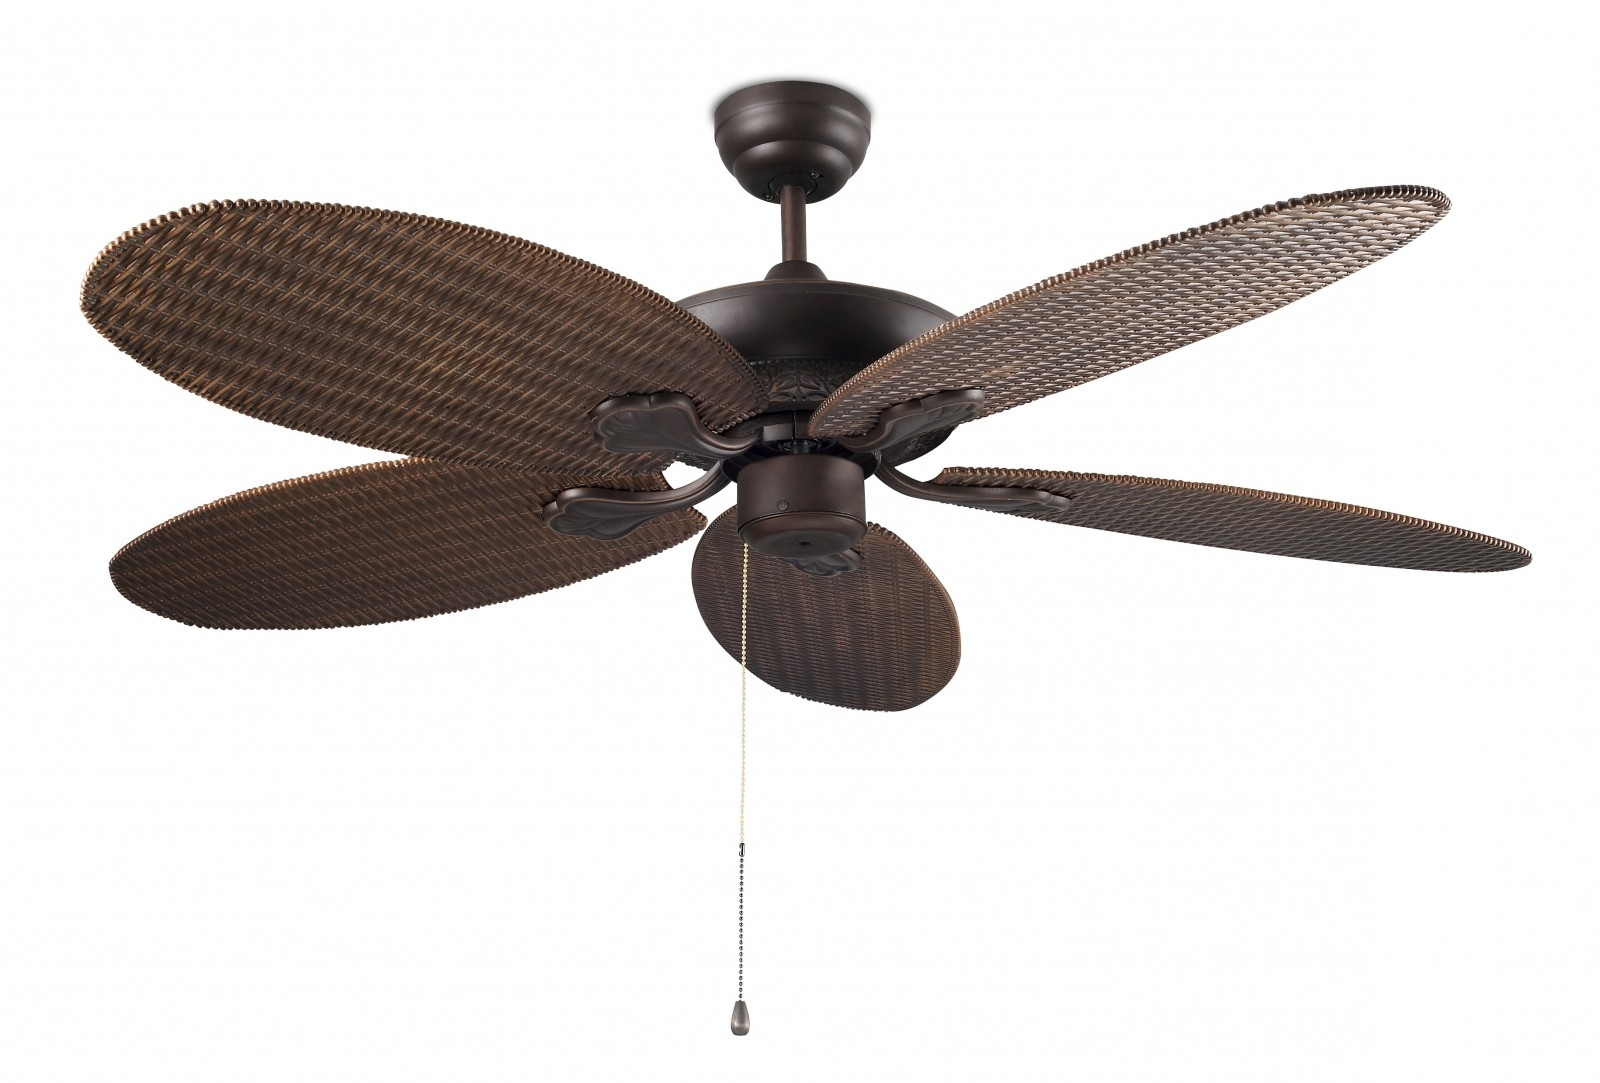 """Leds C4 Design Ceiling Fan Phuket 132cm / 52"""" With Pull Cord Ceiling Throughout Widely Used Outdoor Ceiling Fans With Cord (View 3 of 20)"""